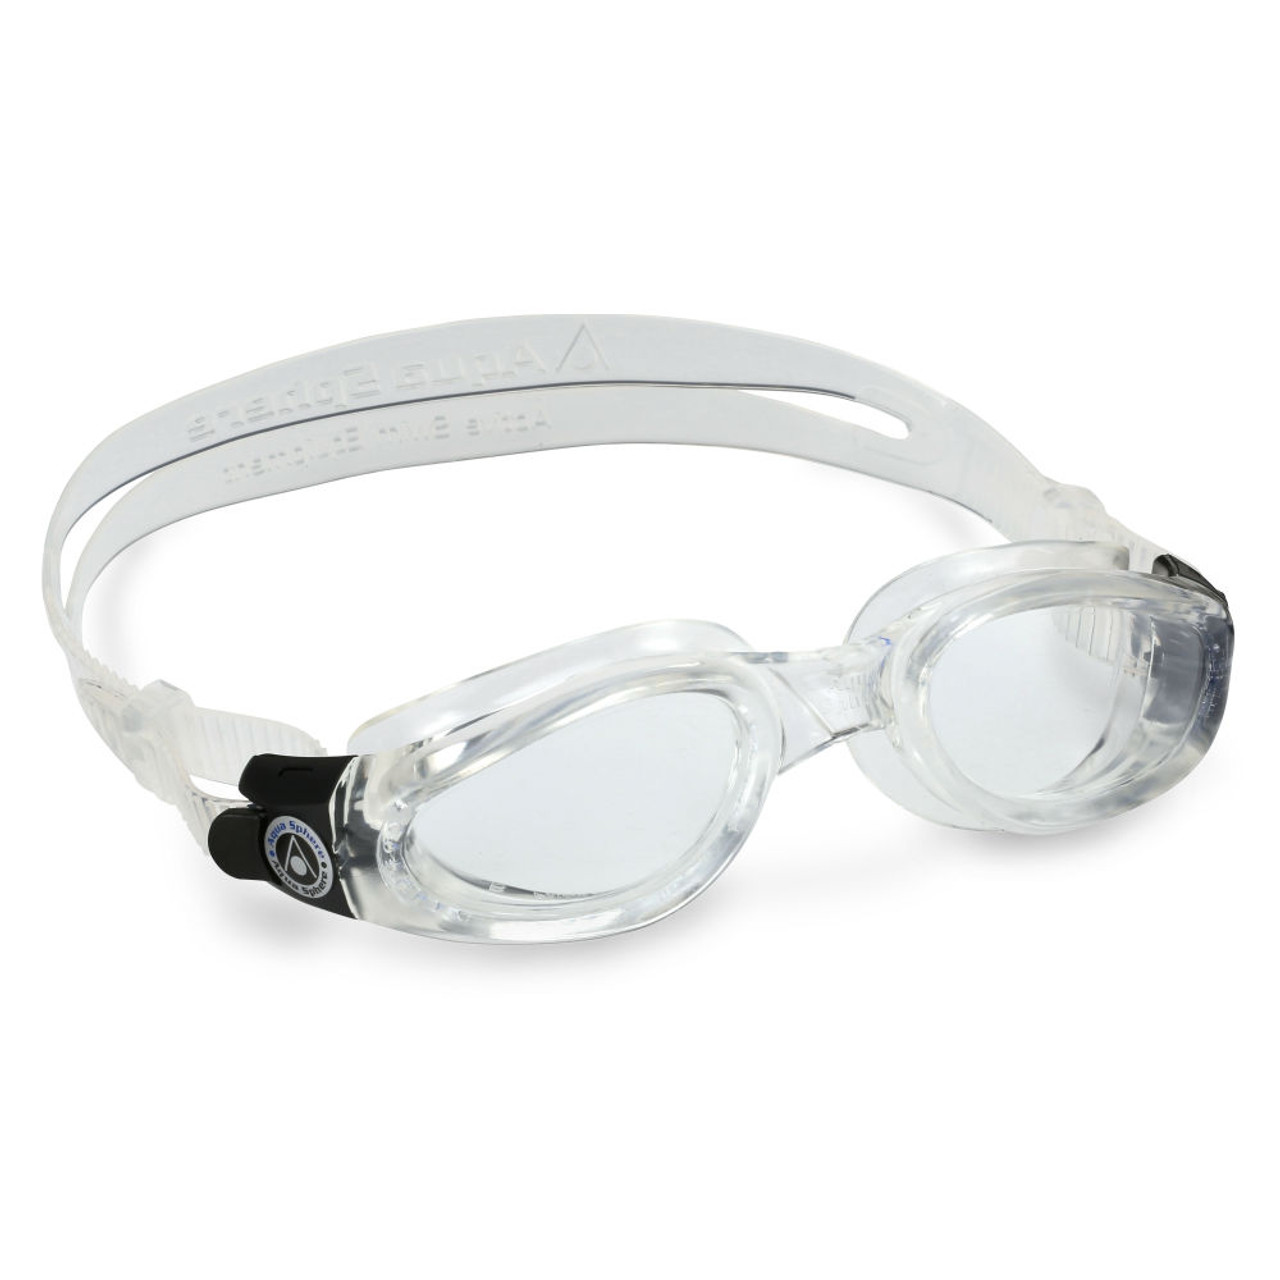 85eec4b5b84e Aqua Sphere Kaiman Swimming Goggles - Clear Lens with Clear Frame